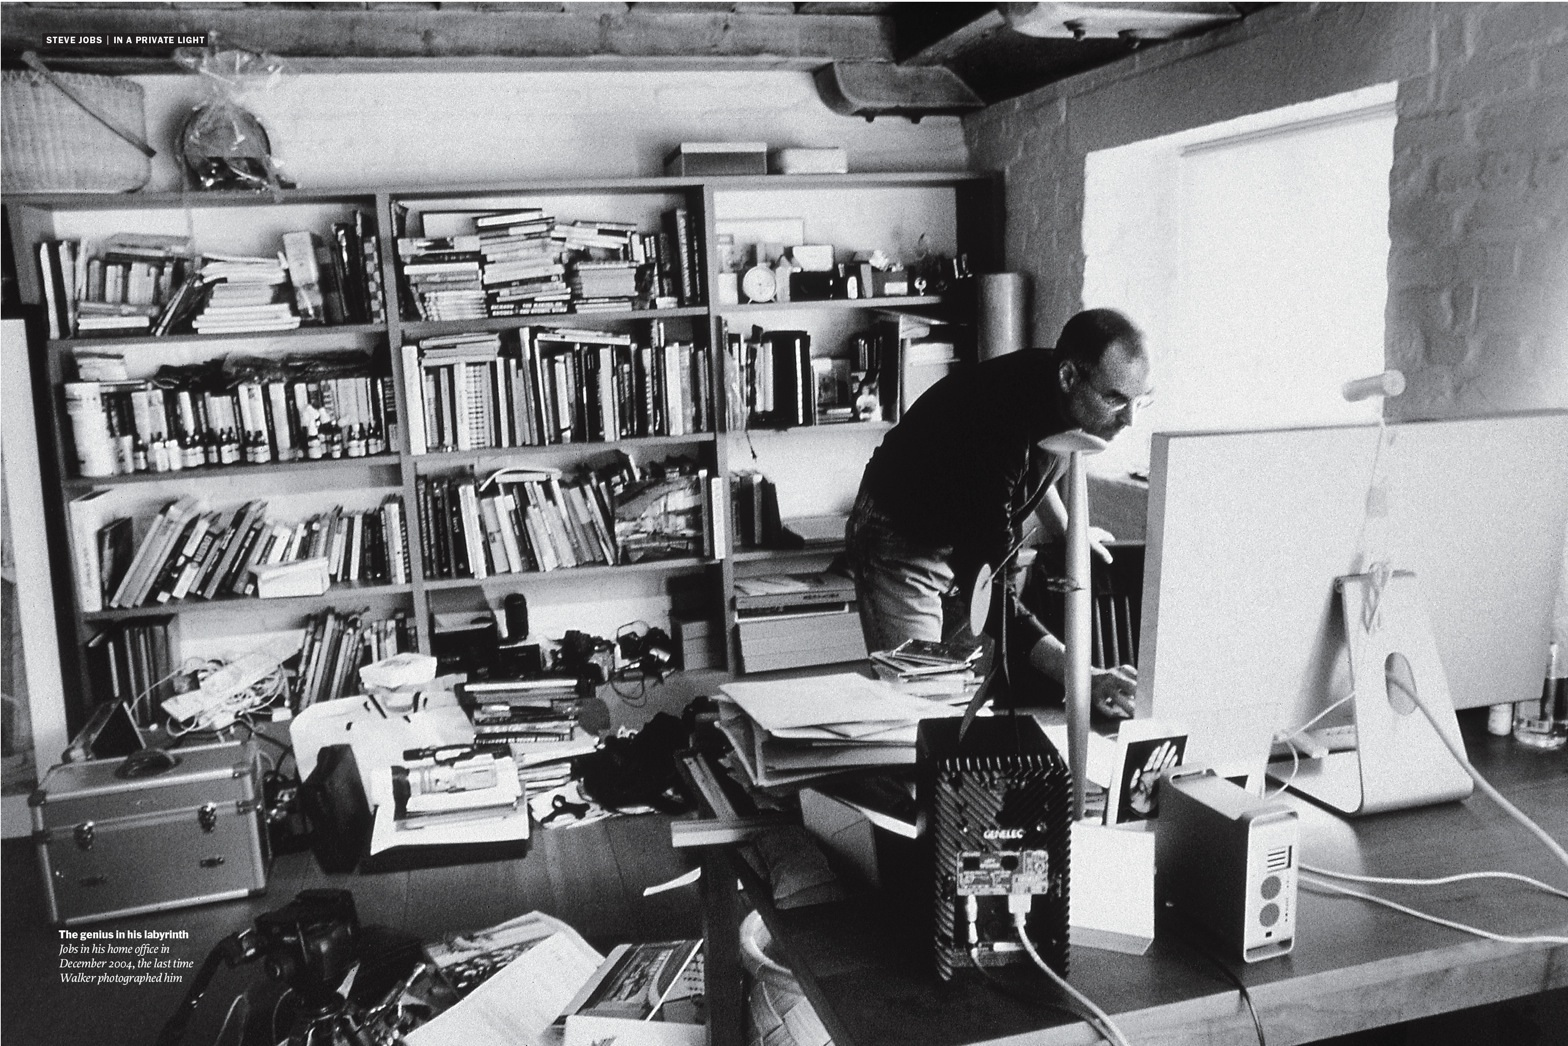 Mess and creativity: Steve Jobs cluttered home Office